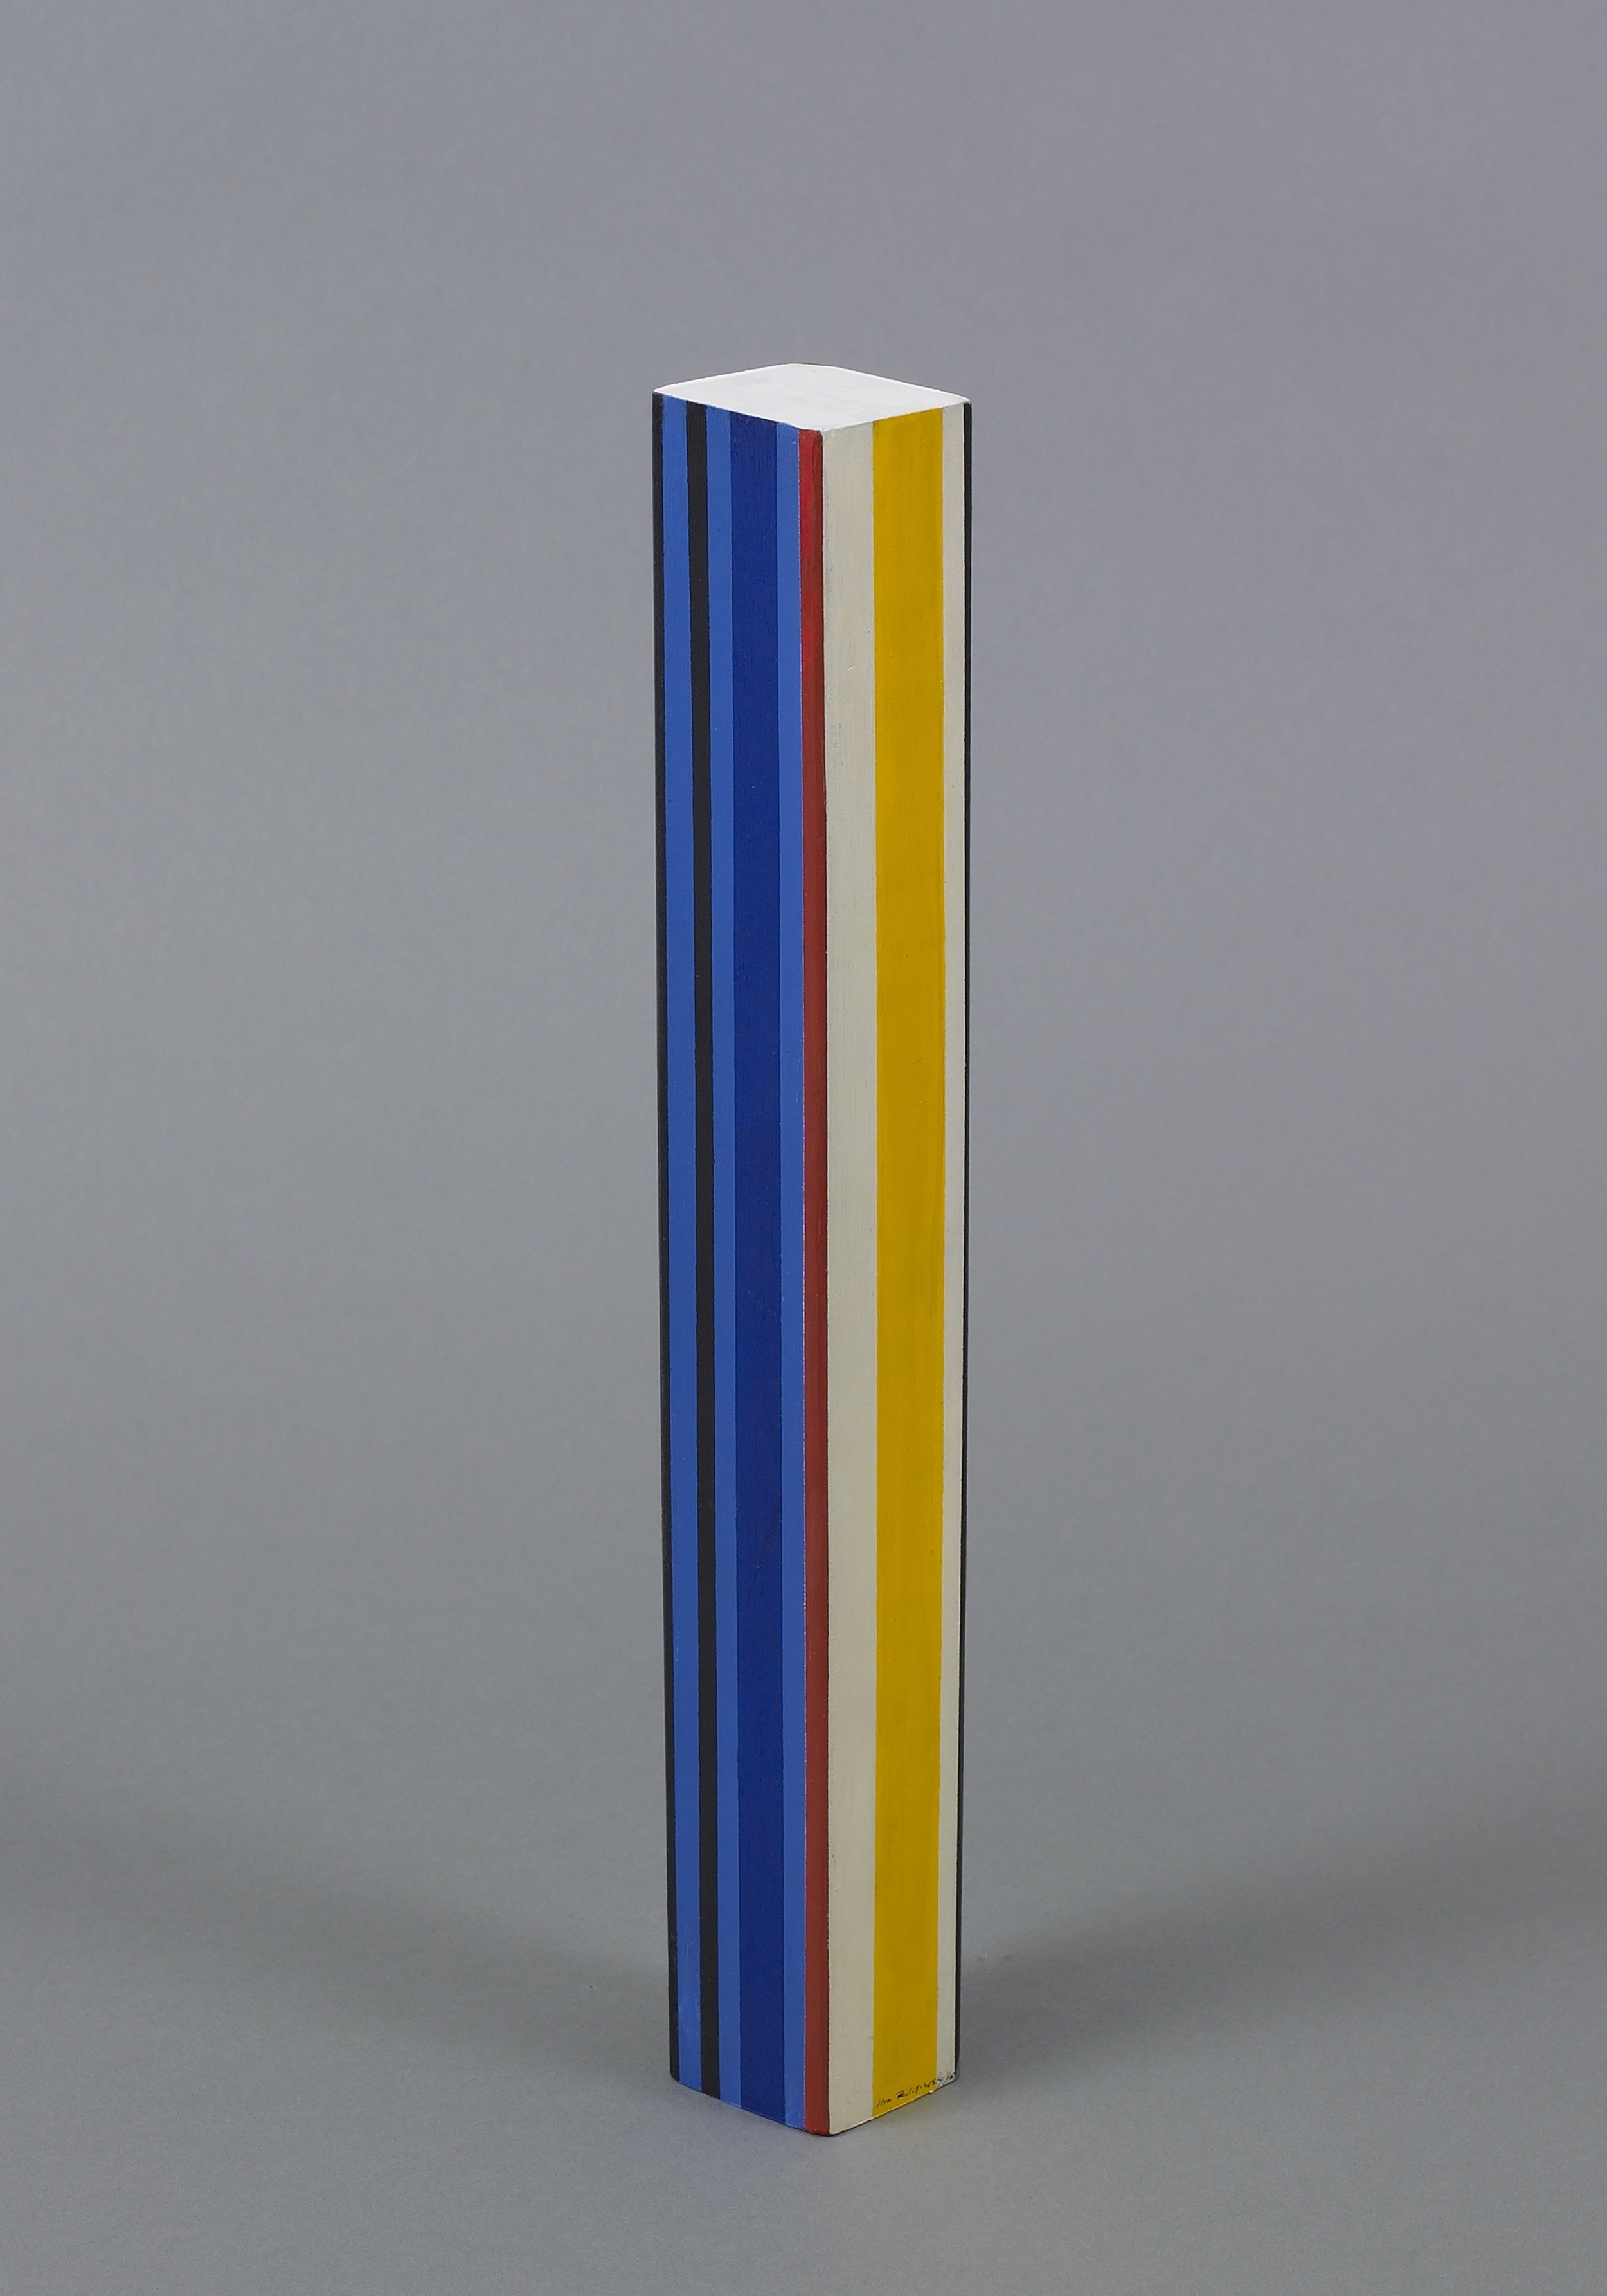 Untitled, c. 1965,   Acrylic on wood, 13 3/4 x 2 x 2 inches